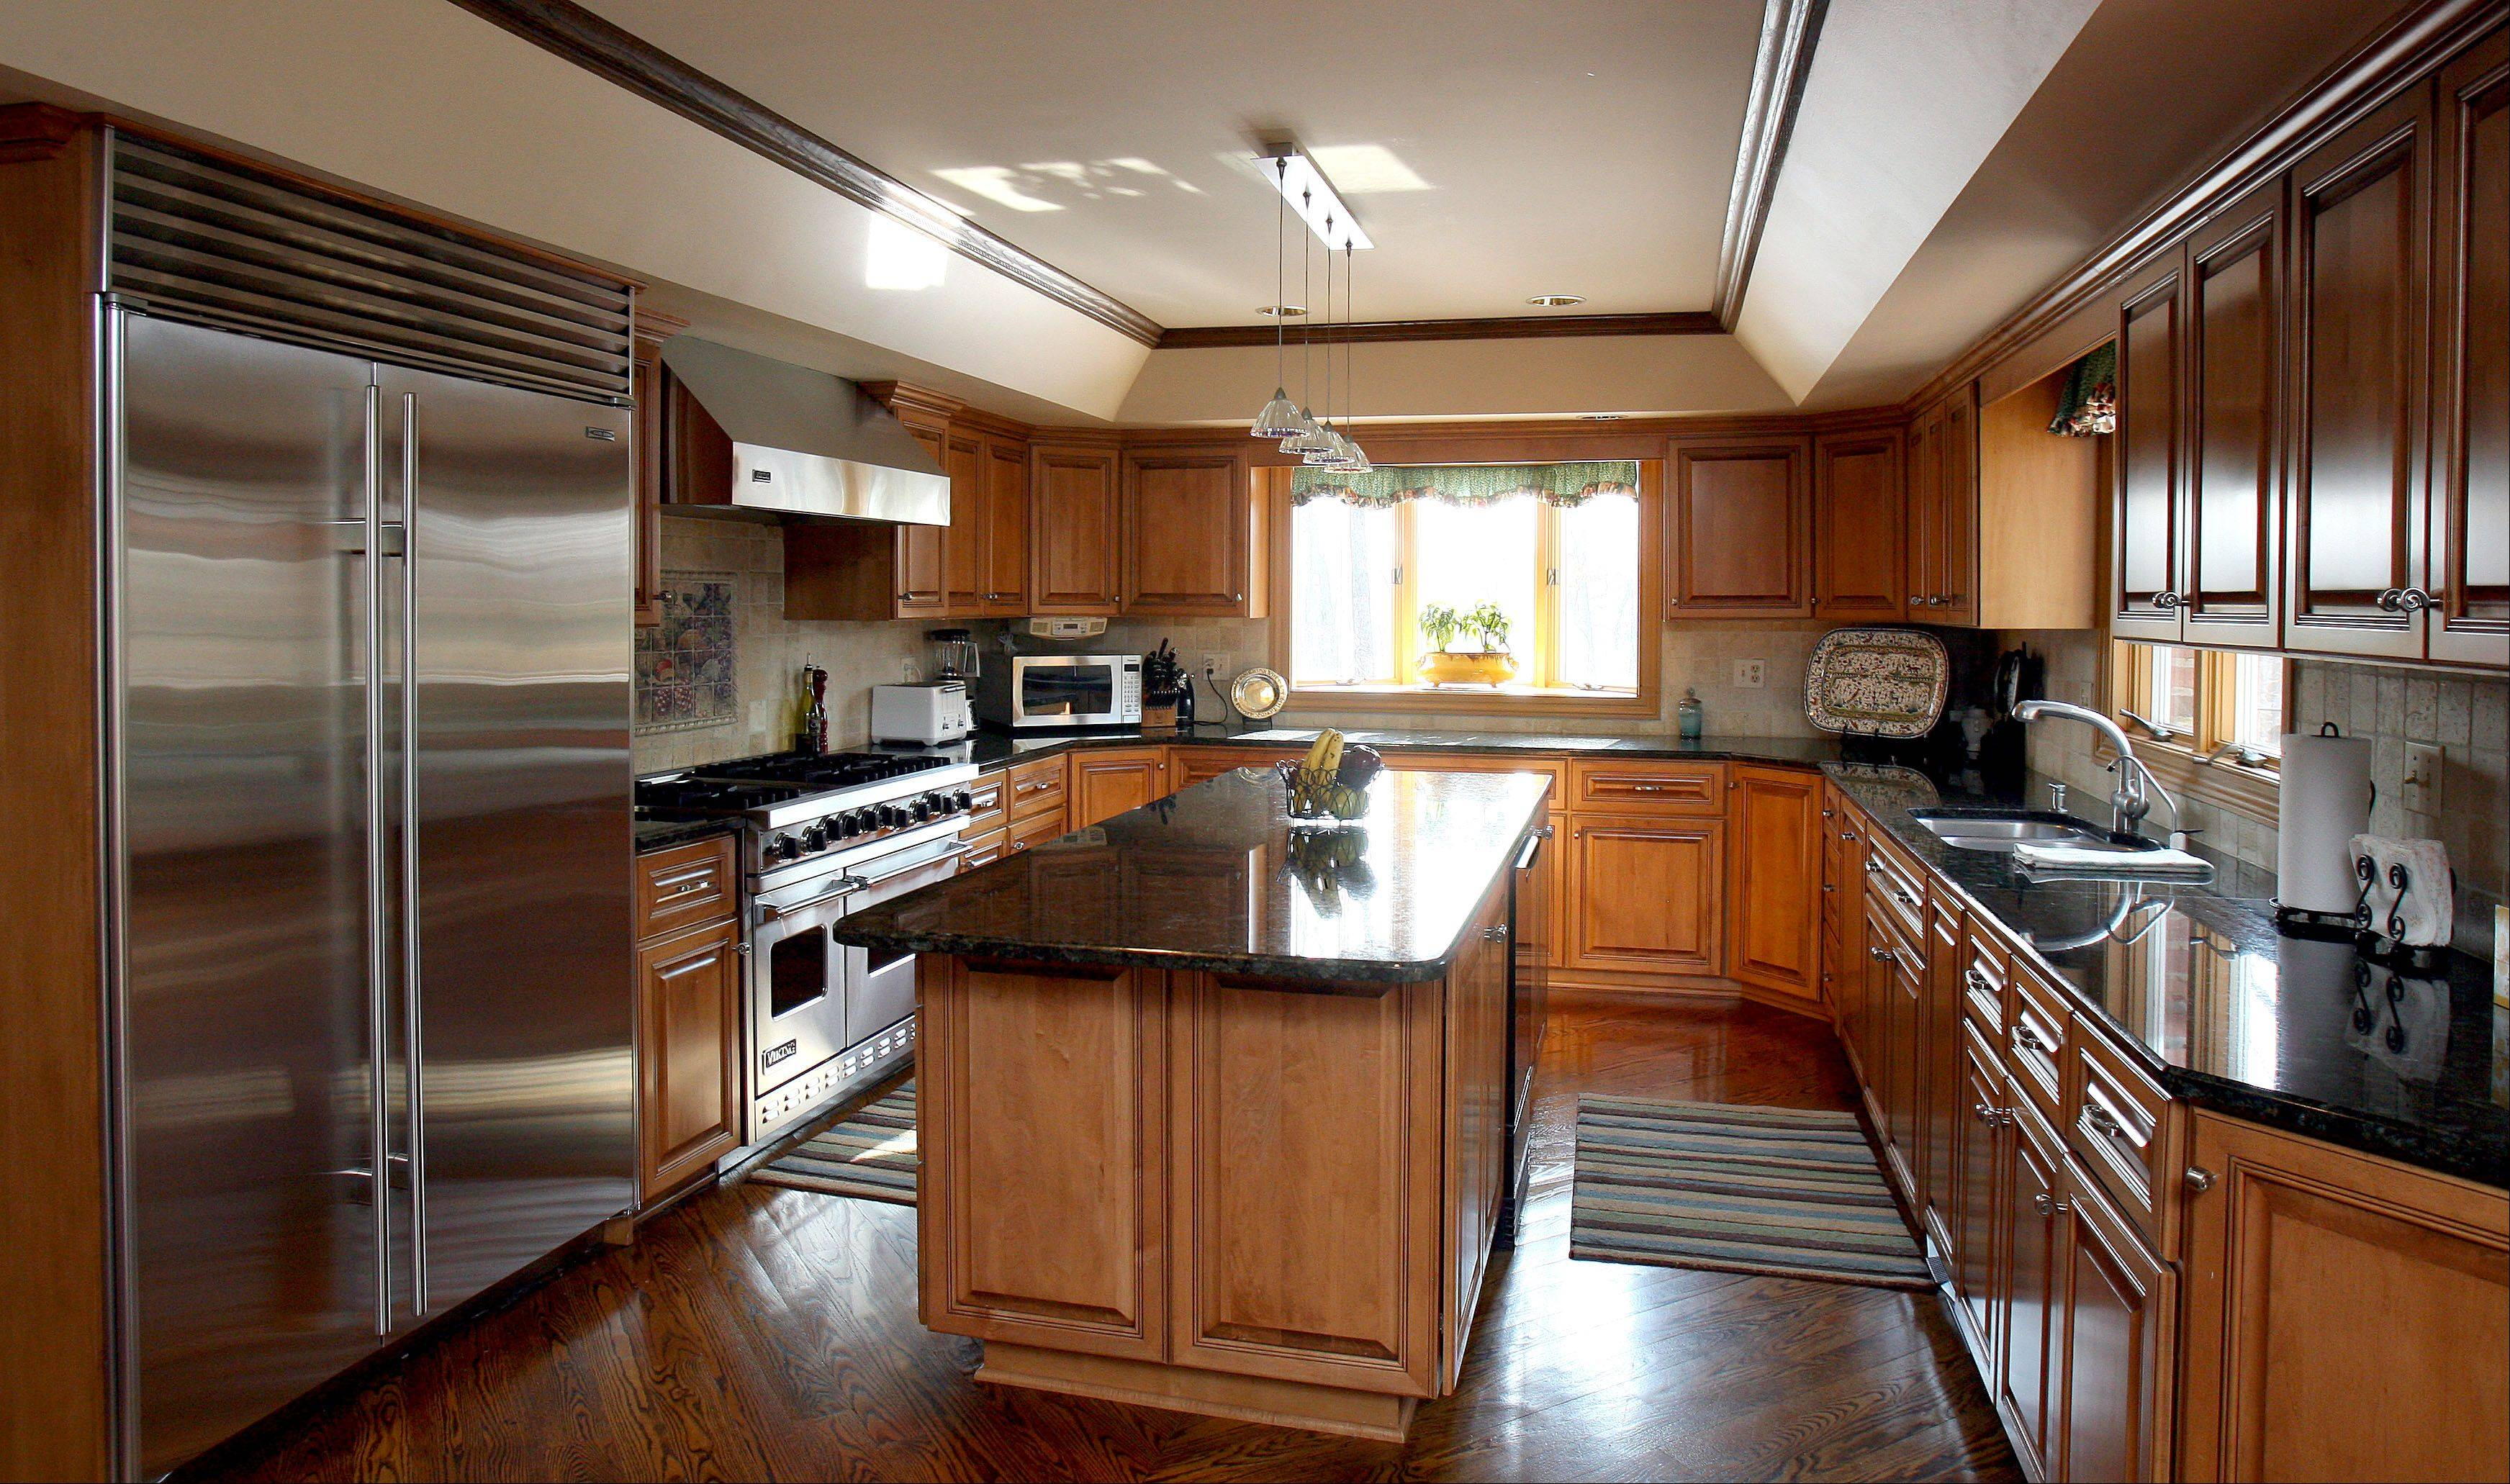 The kitchen of Louise and Tony Sorrentino's home shows maple cabinets, granite countertops and stainless steel appliances.